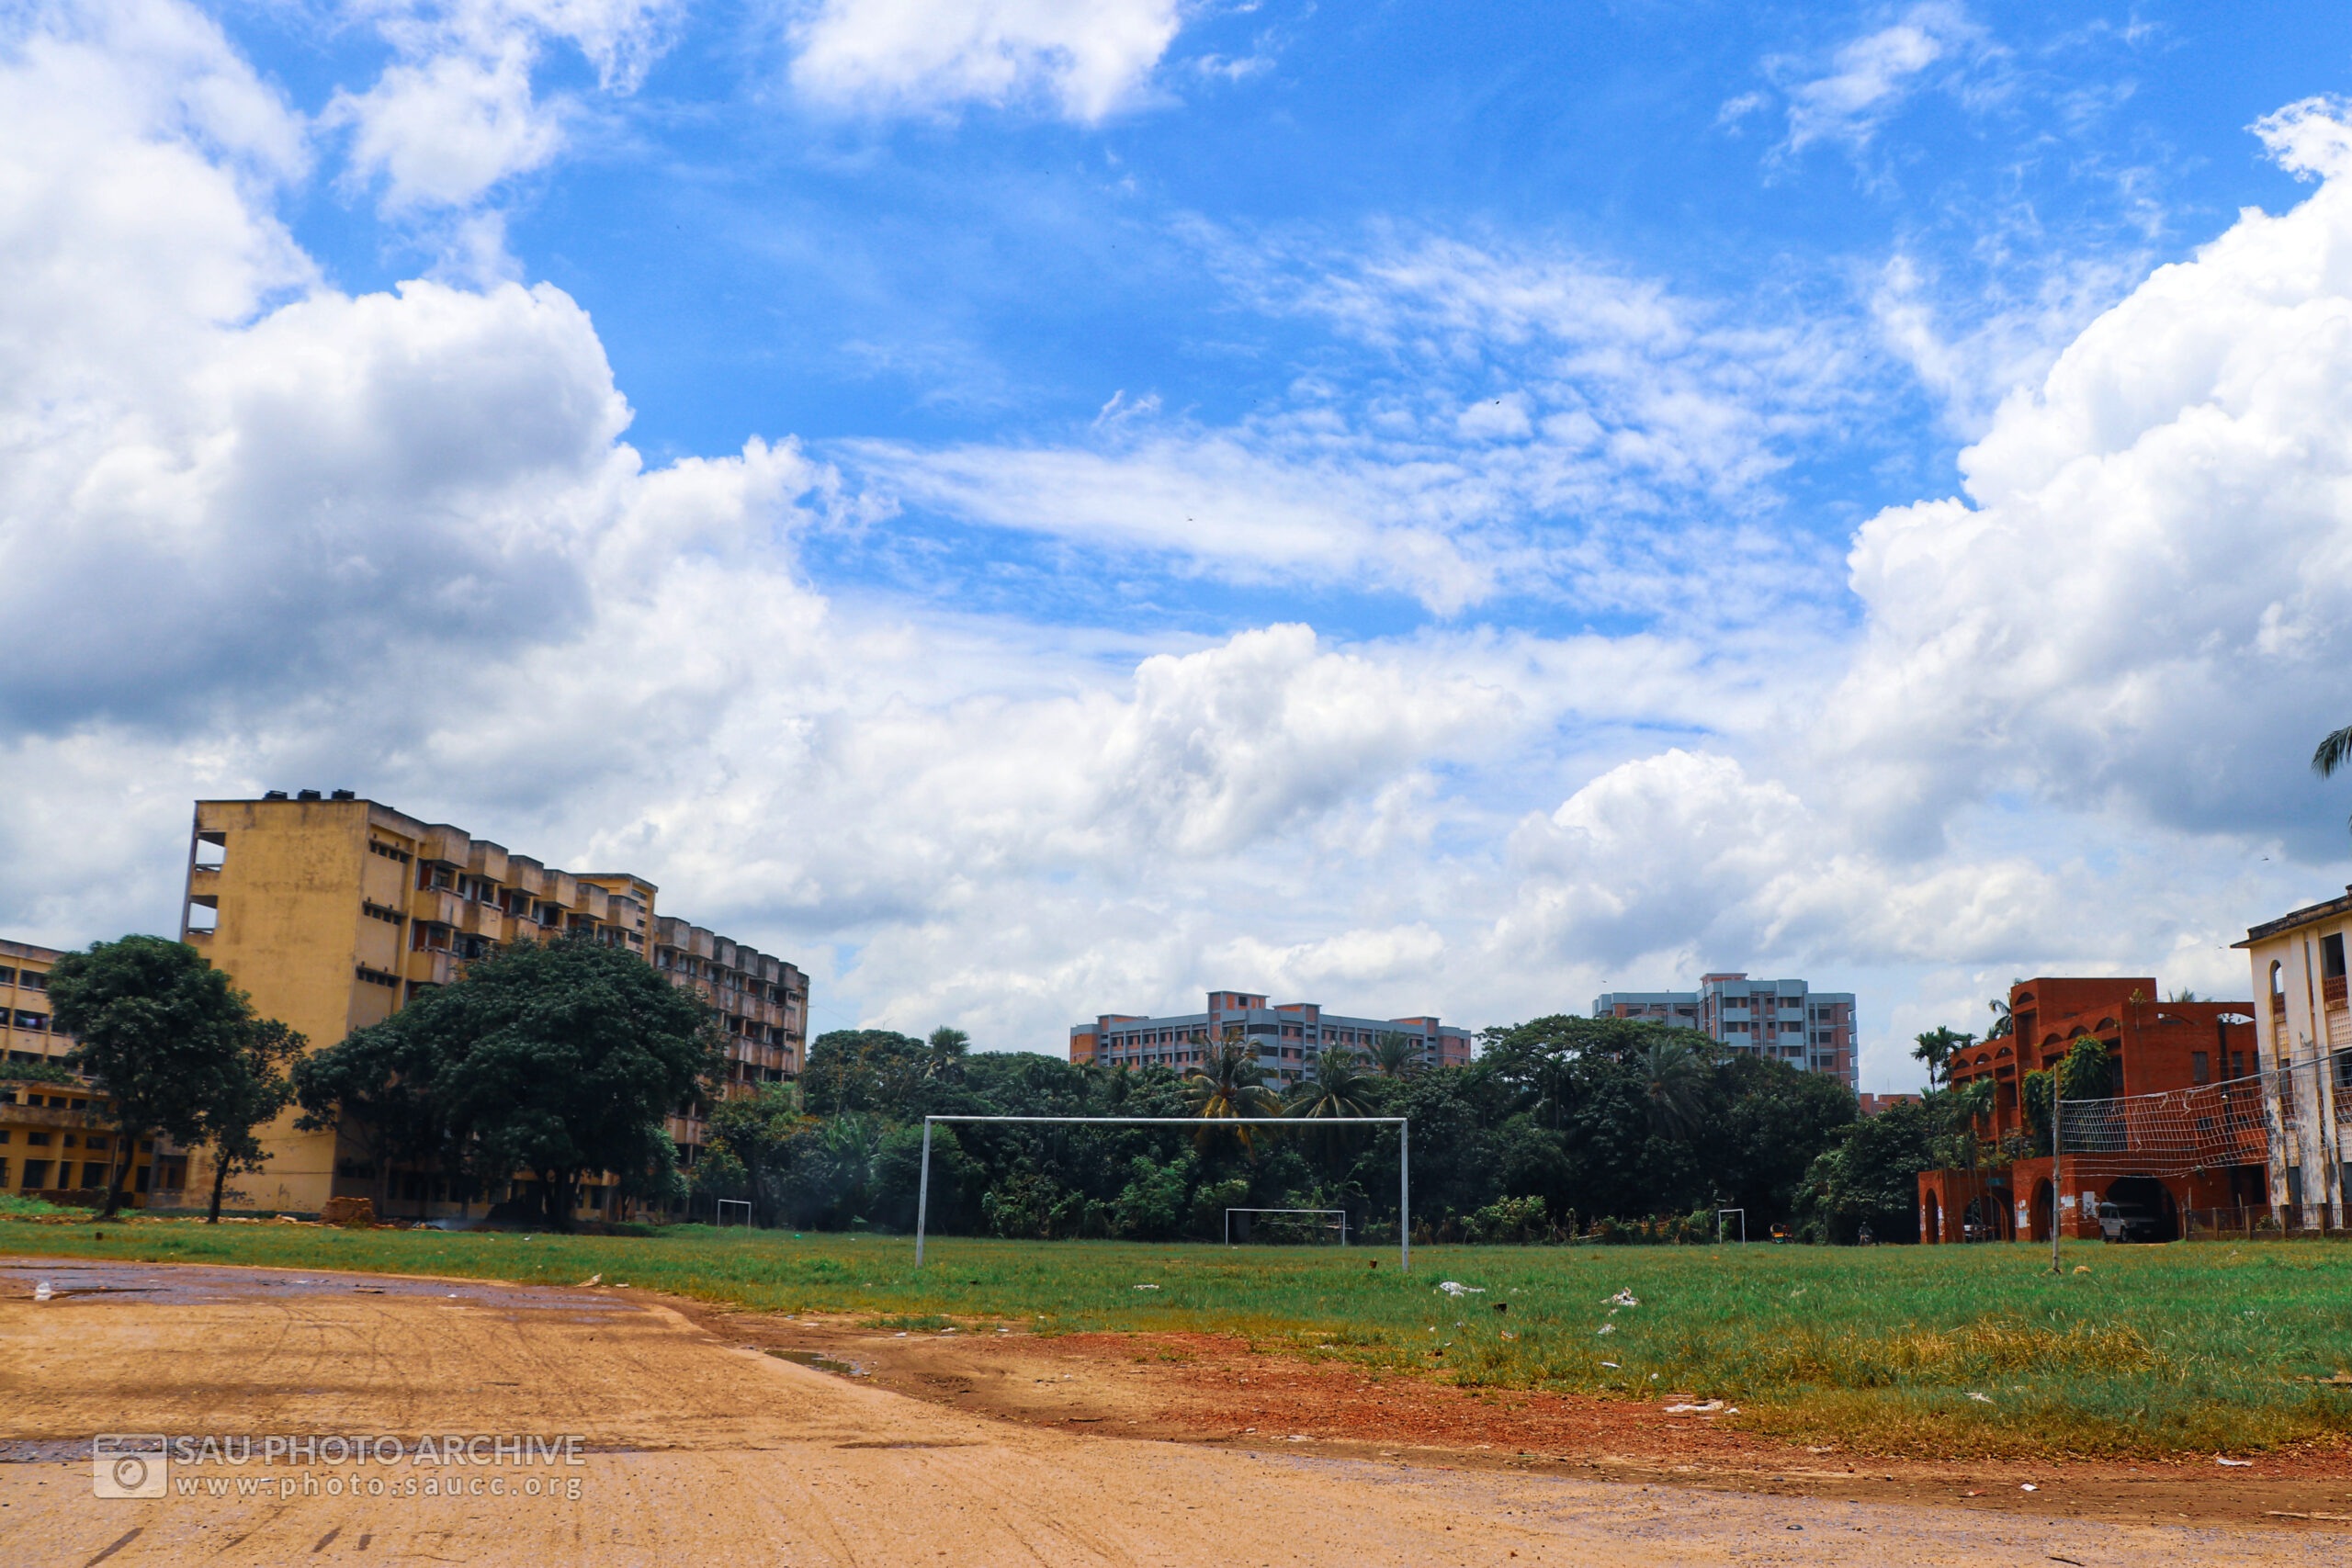 A Scenic photo is captured by Md. Nazmus Sakib Anik at Sher-e-Bangla Agricultural University titled Central Play Ground